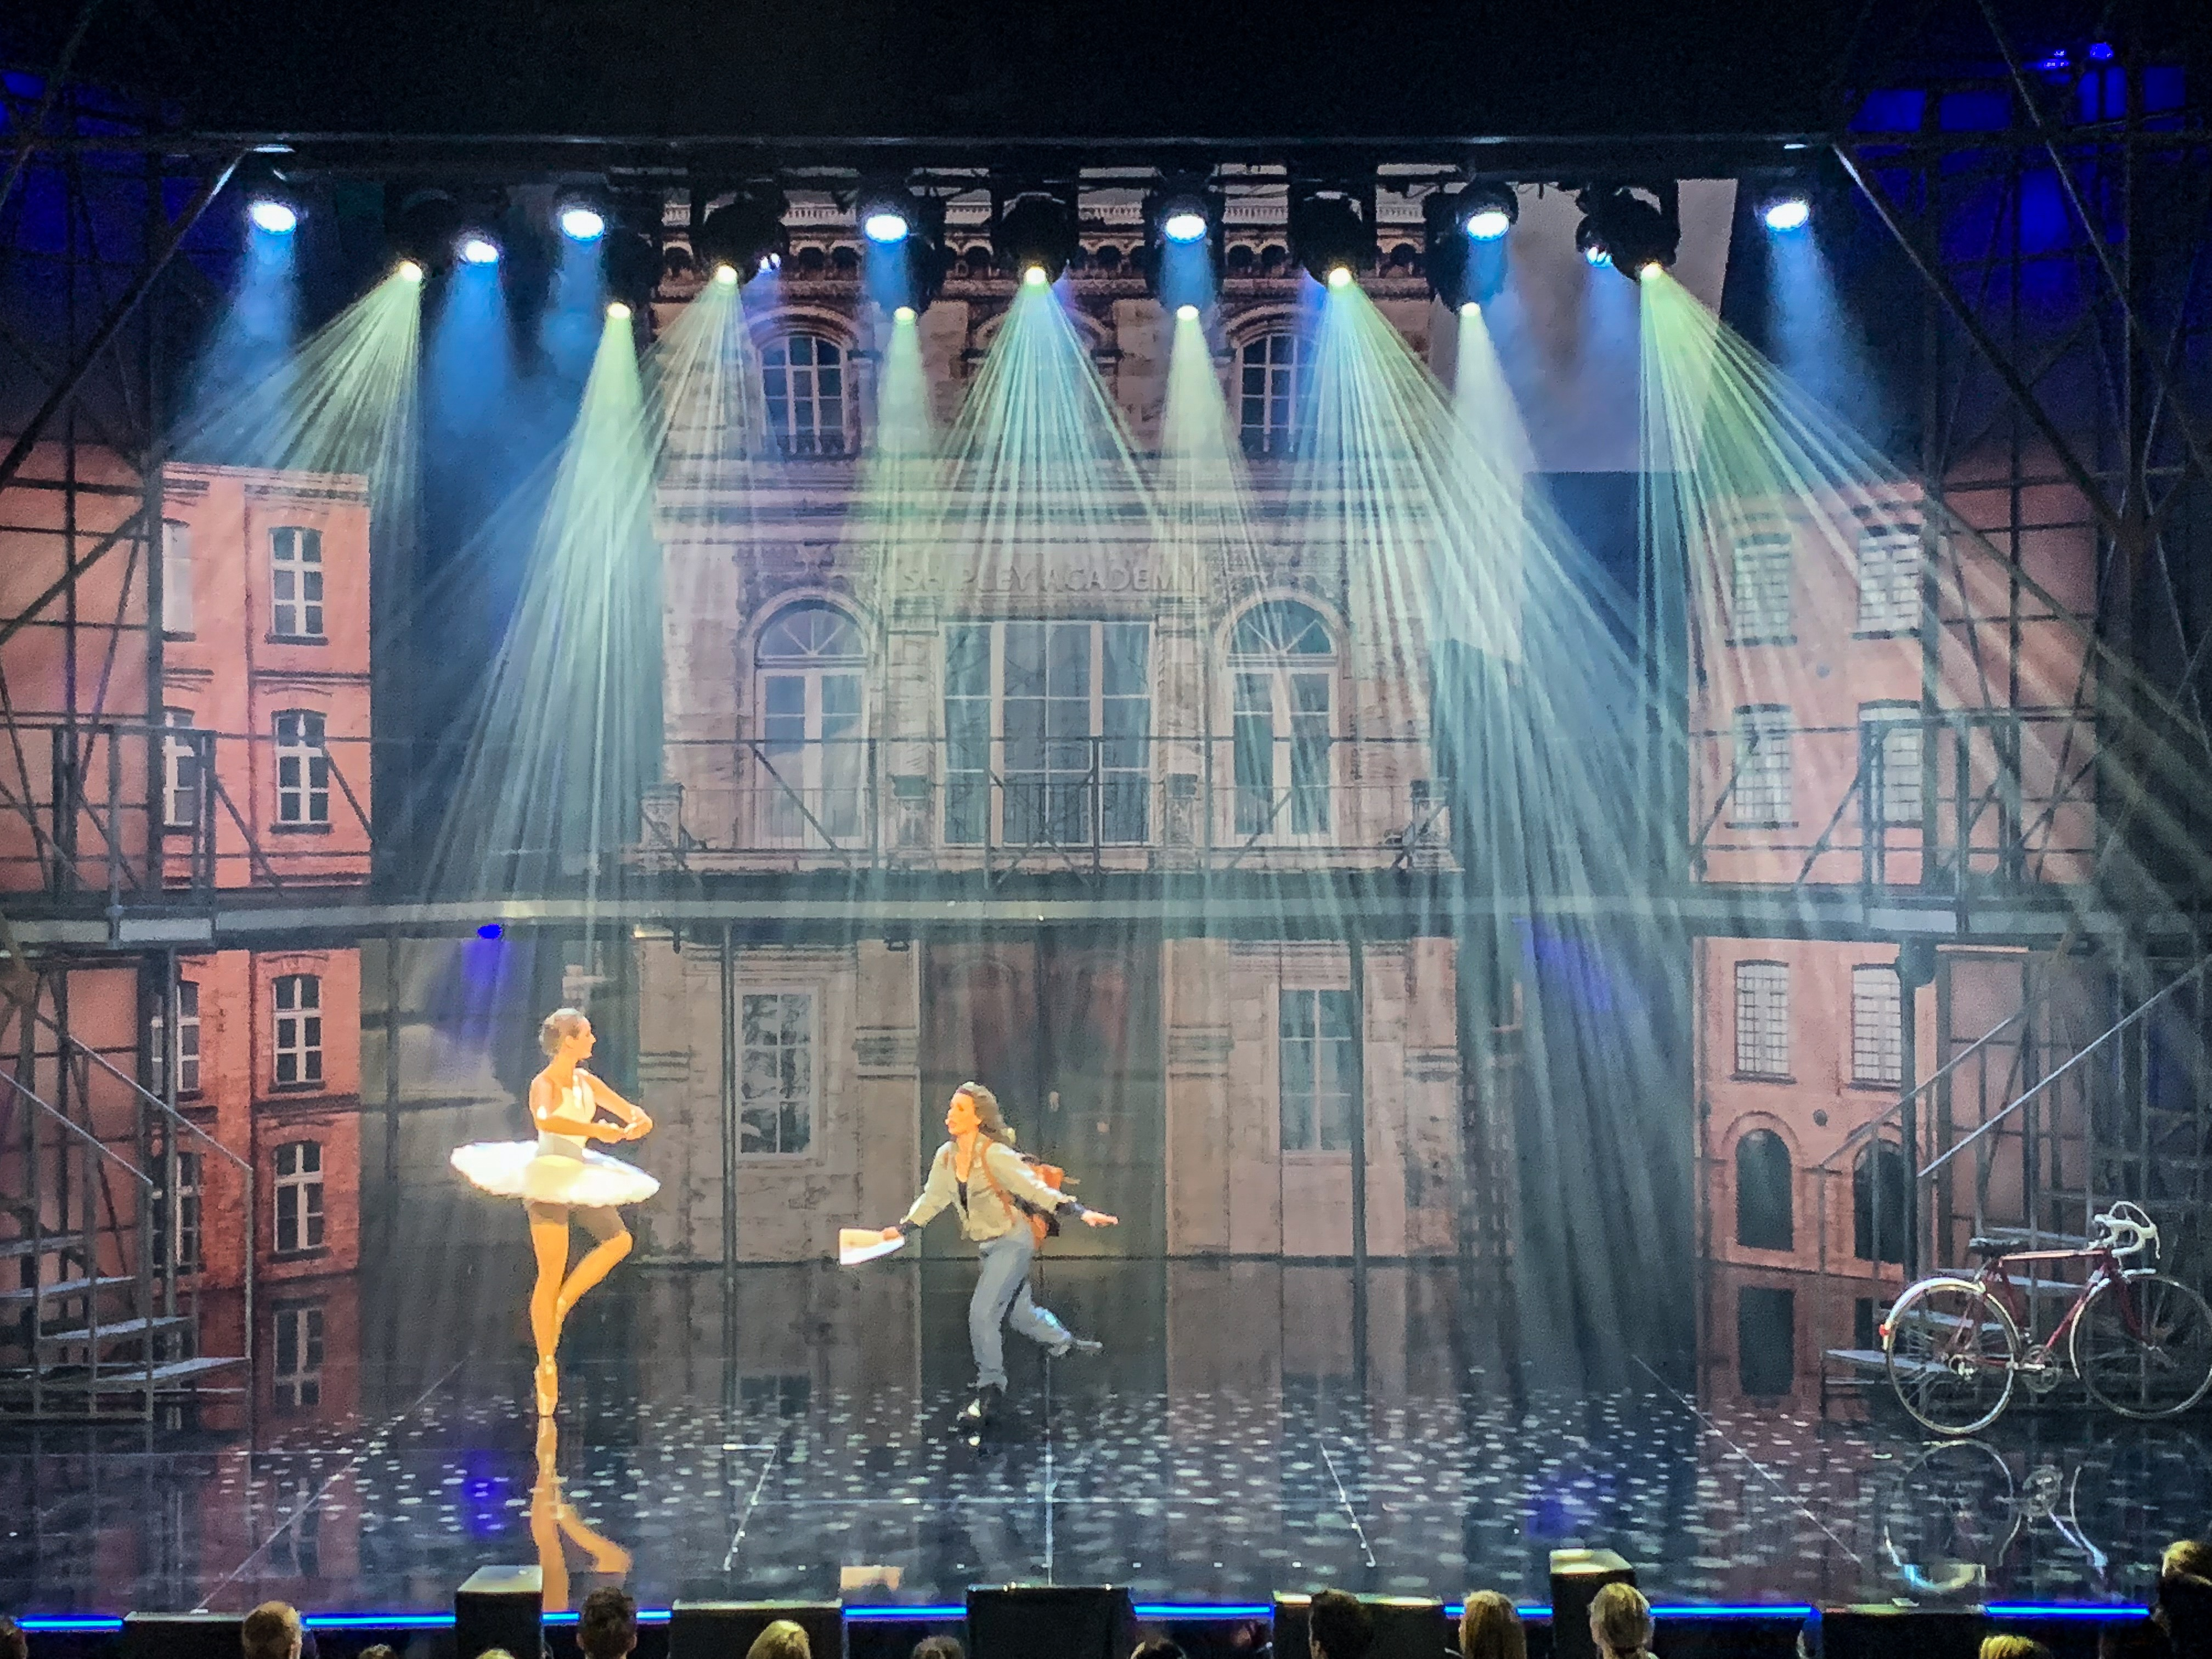 flashdance-the-musical-norway-photo-boidl-fuhr